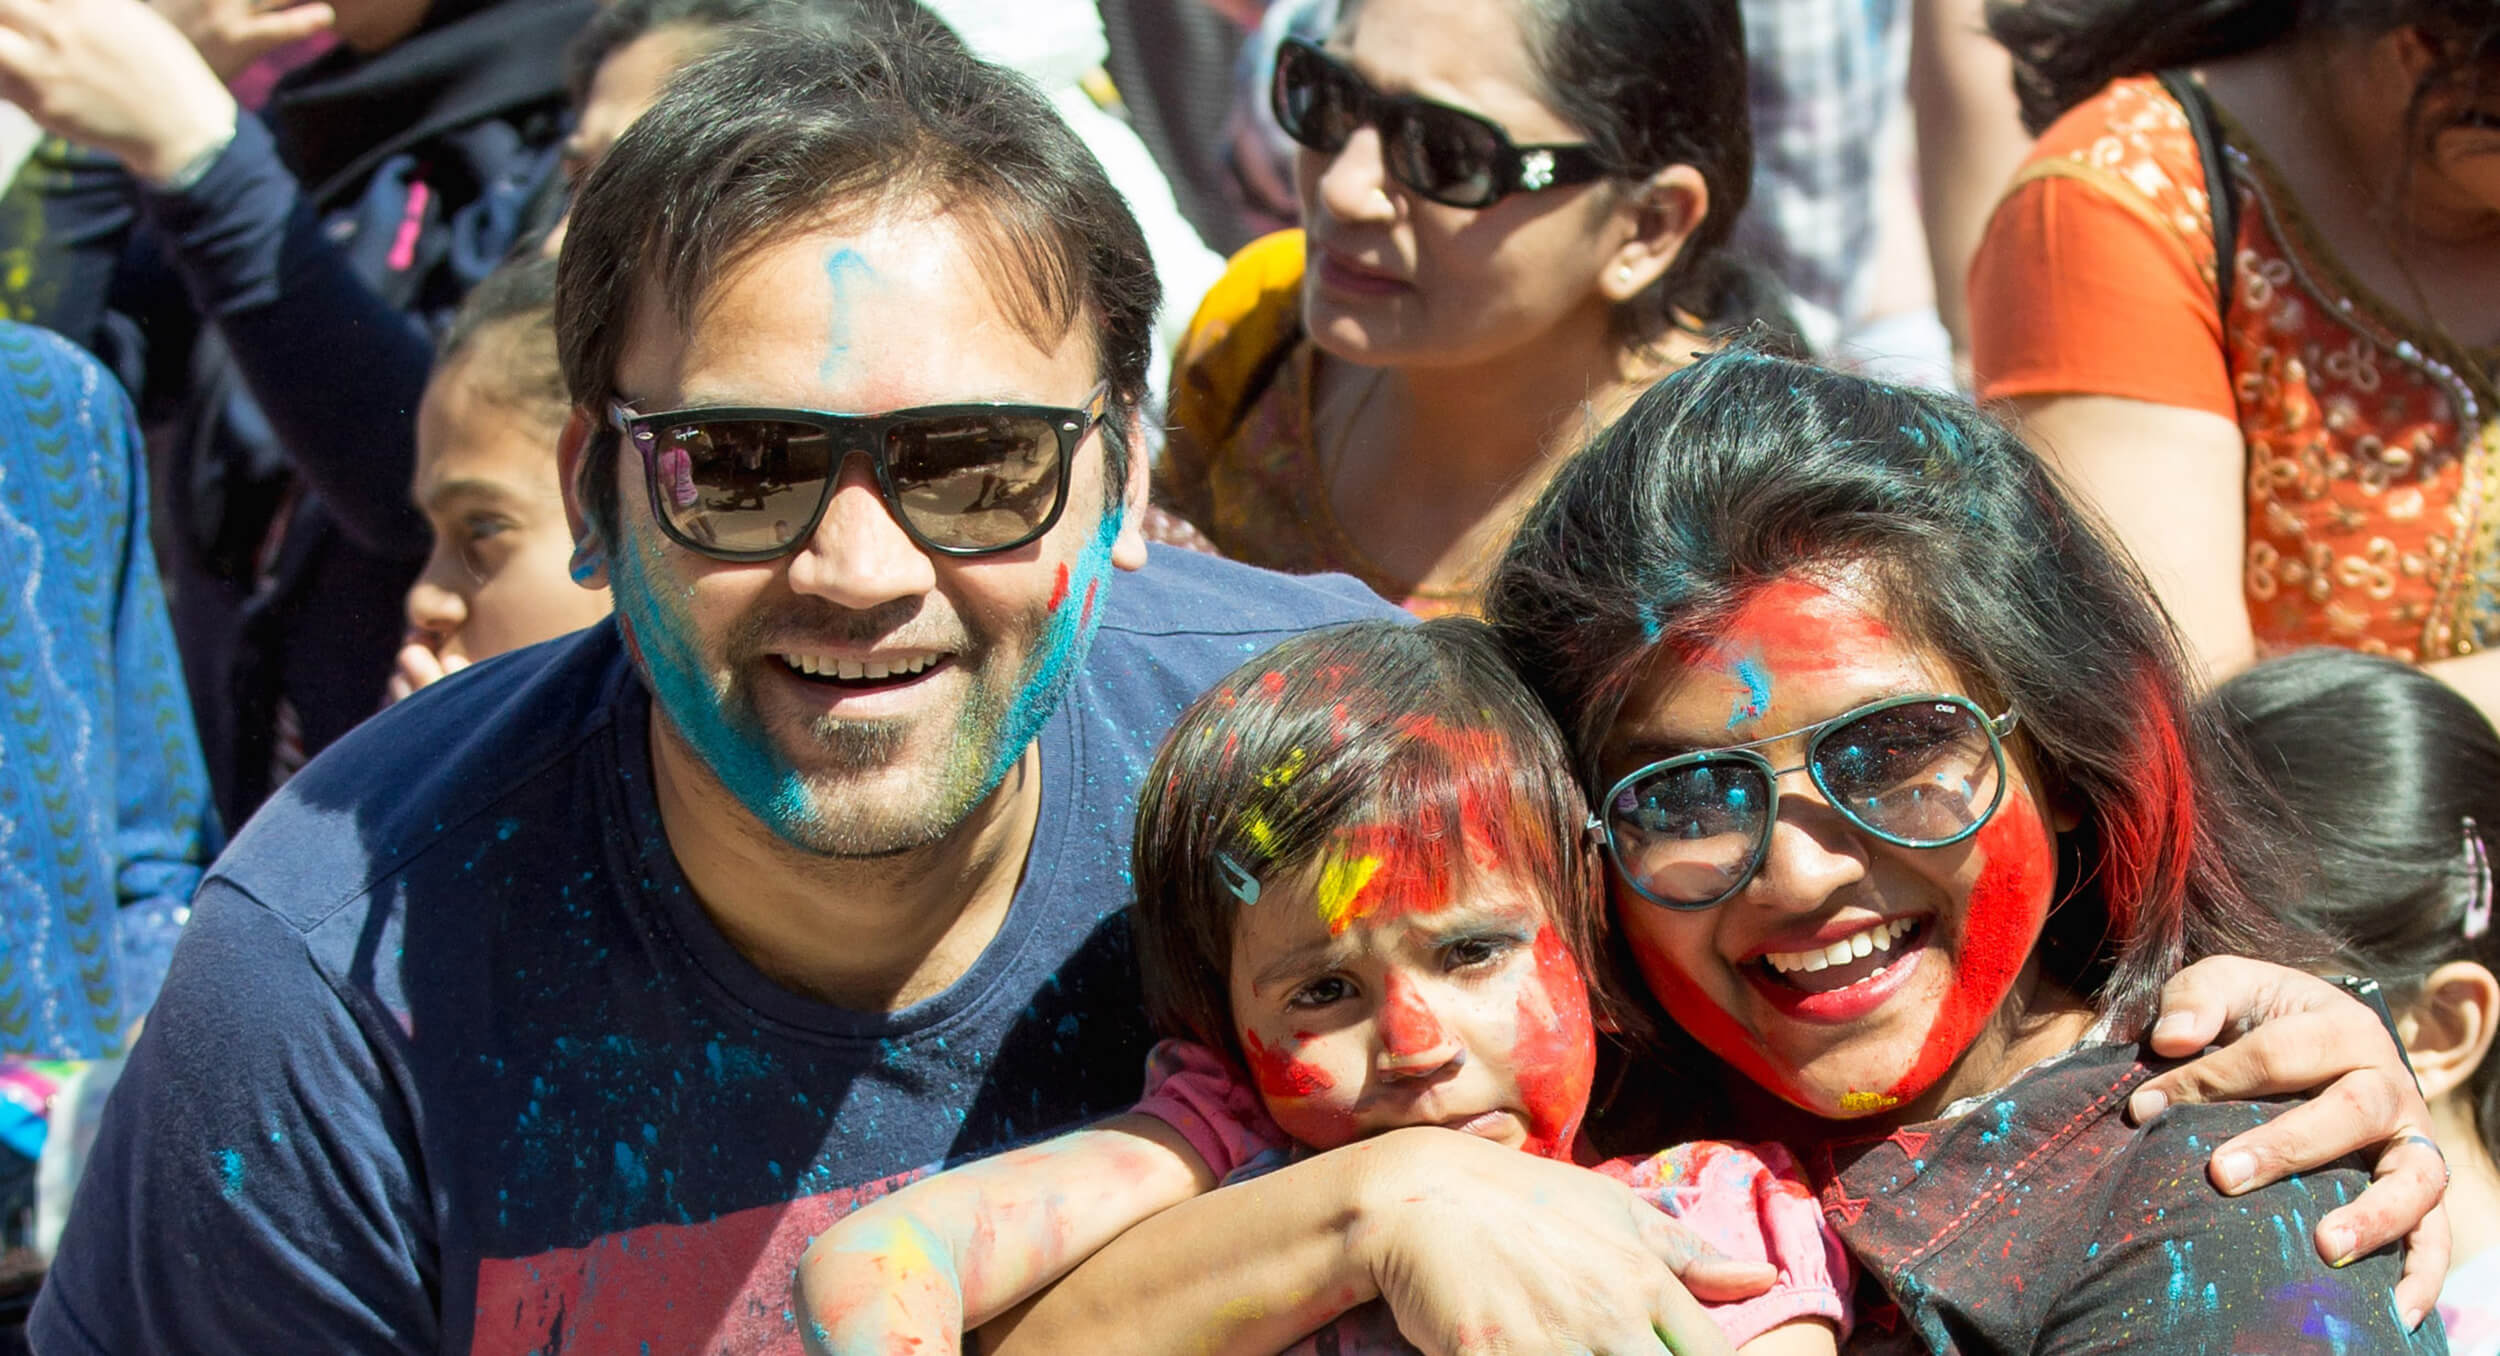 Jimmy, Reet, and Saloni having a blast at the HOLI festival in London's own Victoria Park.